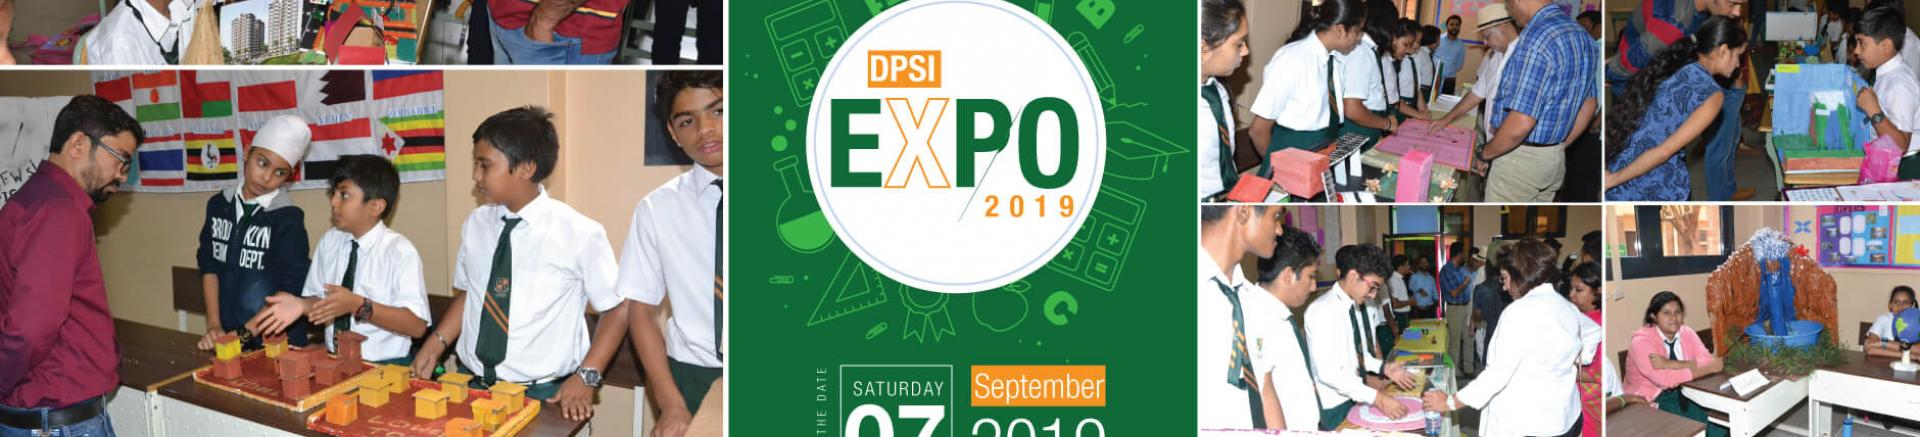 DPSI EXPO INVITATION (07 SEPT. 2019)